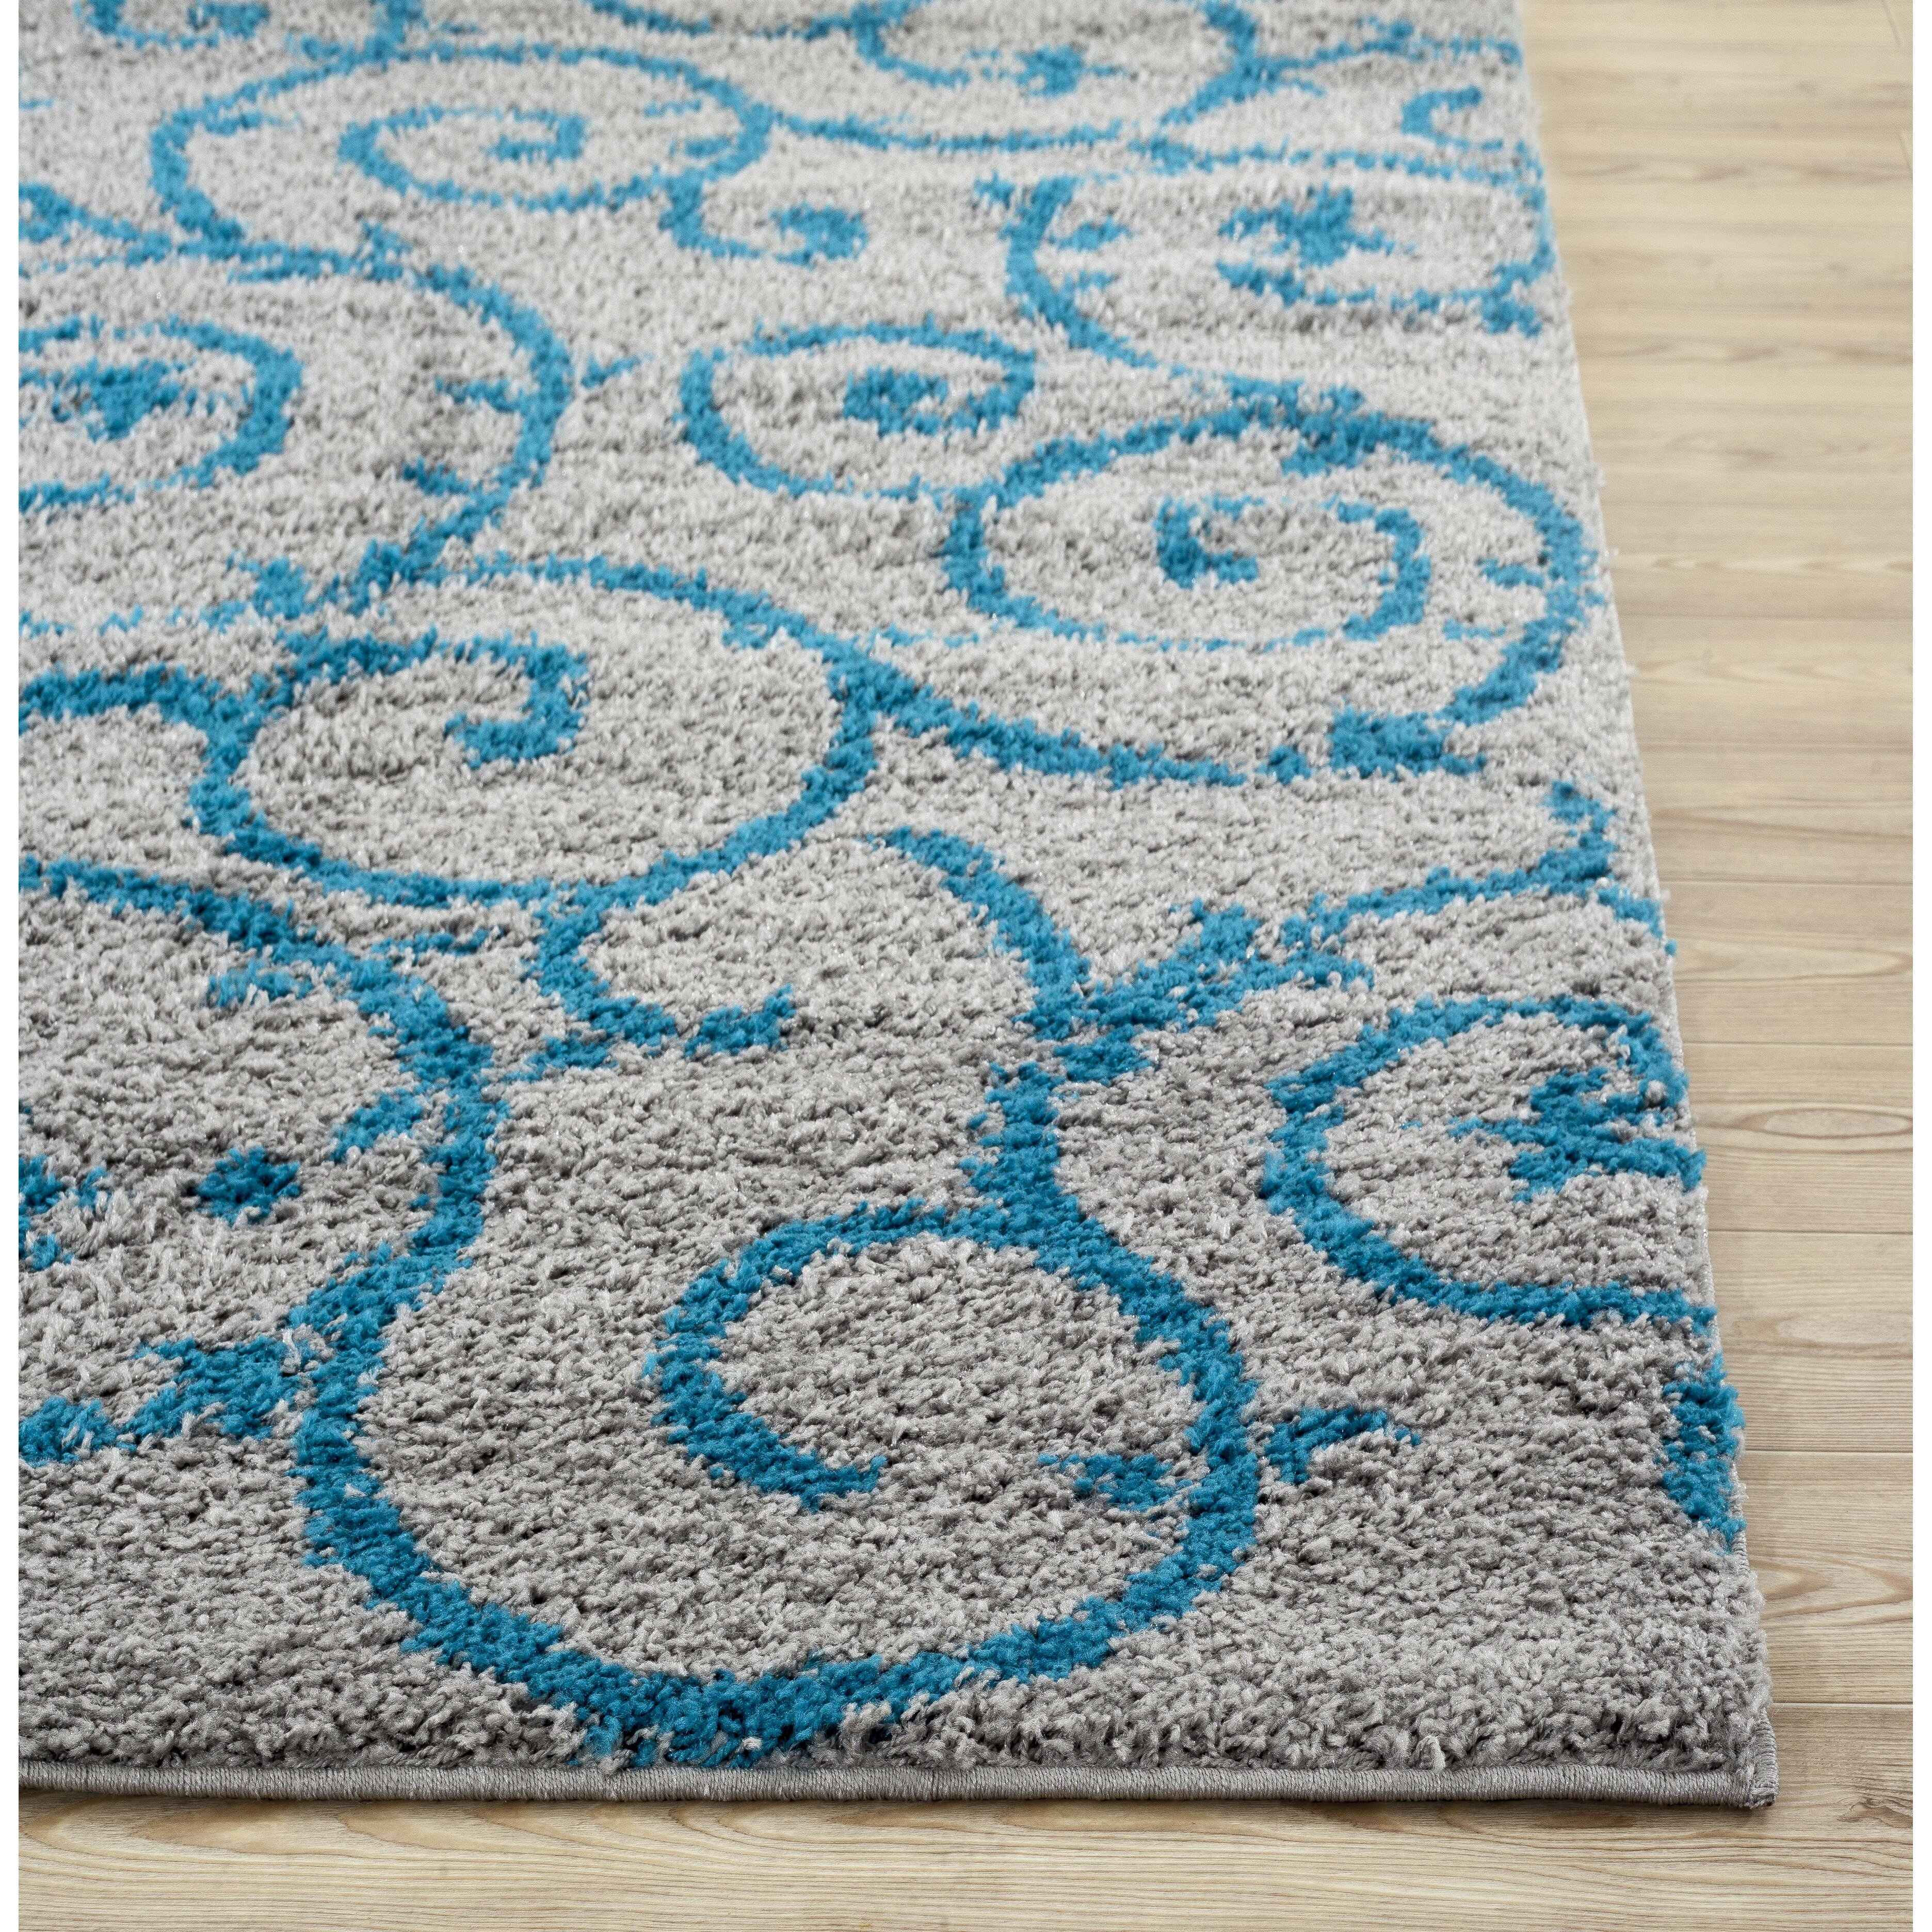 World rug gallery florida turquoise gray area rug for Turquoise area rug